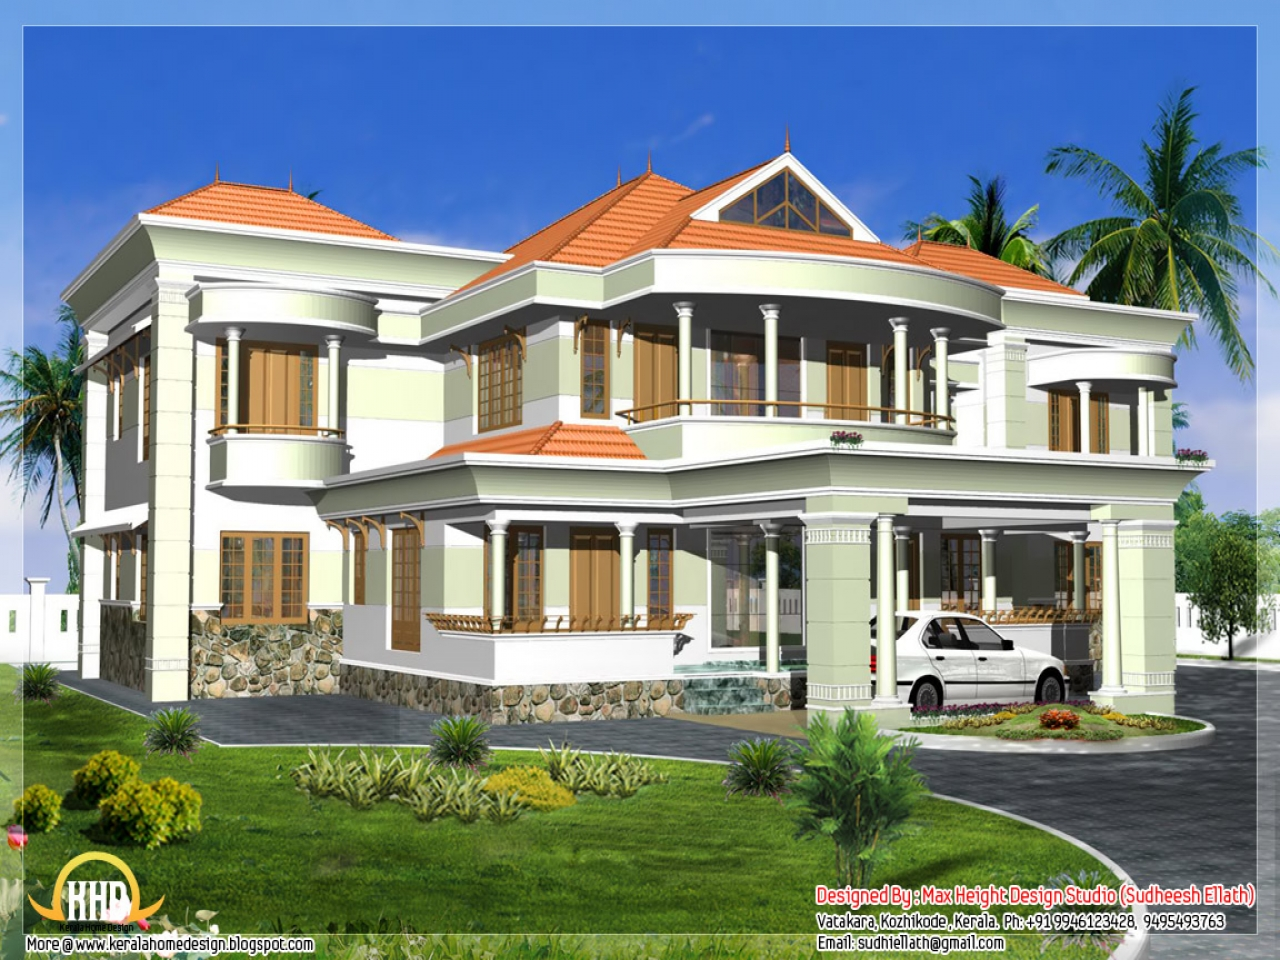 Traditional kerala house designs indian style house design for Www kerala house designs com